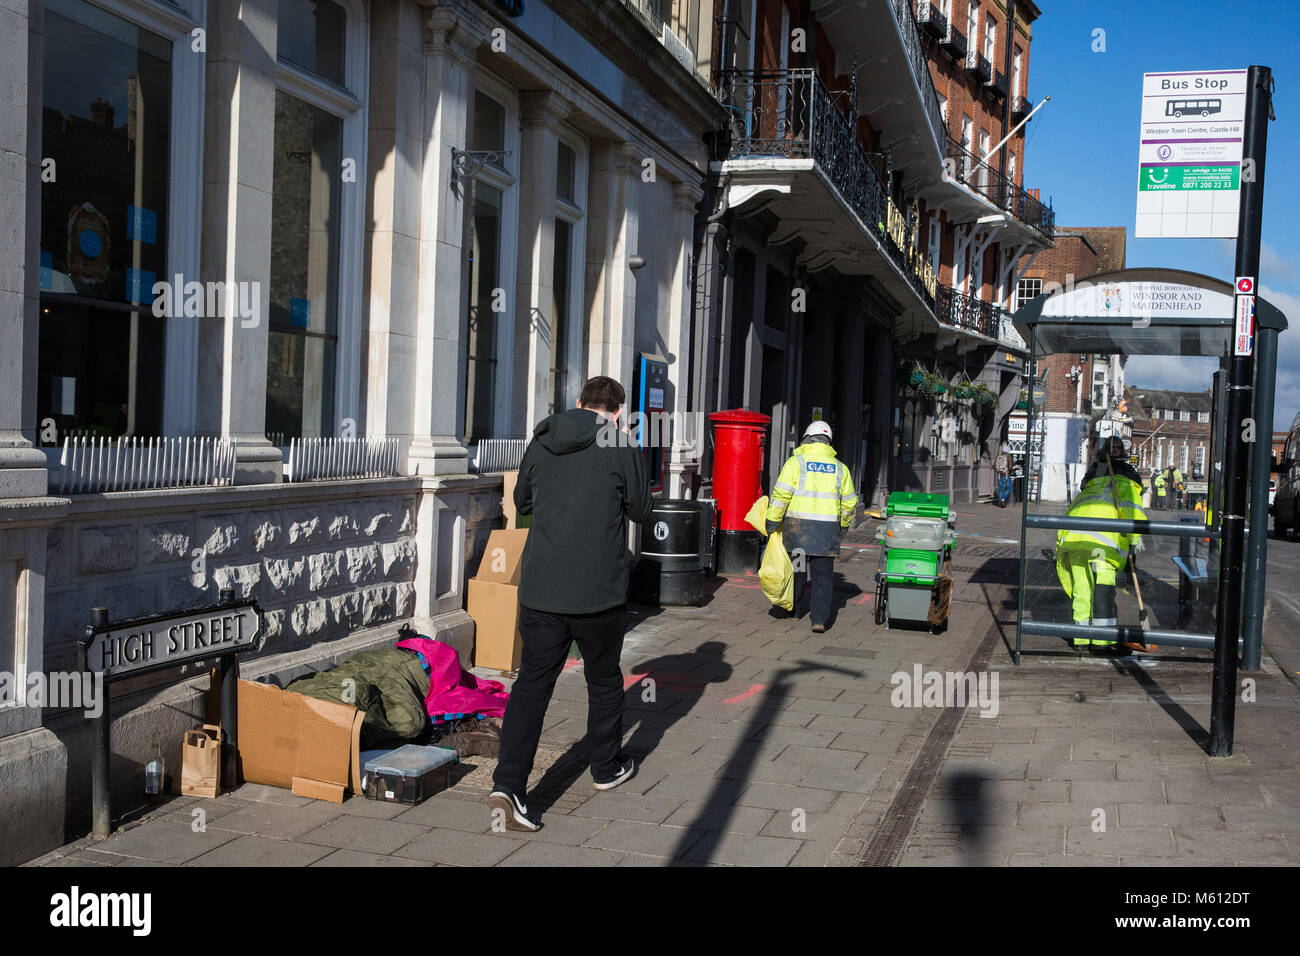 Windsor, UK. 27th February, 2018. A homeless person sleeps in the High Street opposite Windsor Castle after a night - Stock Image